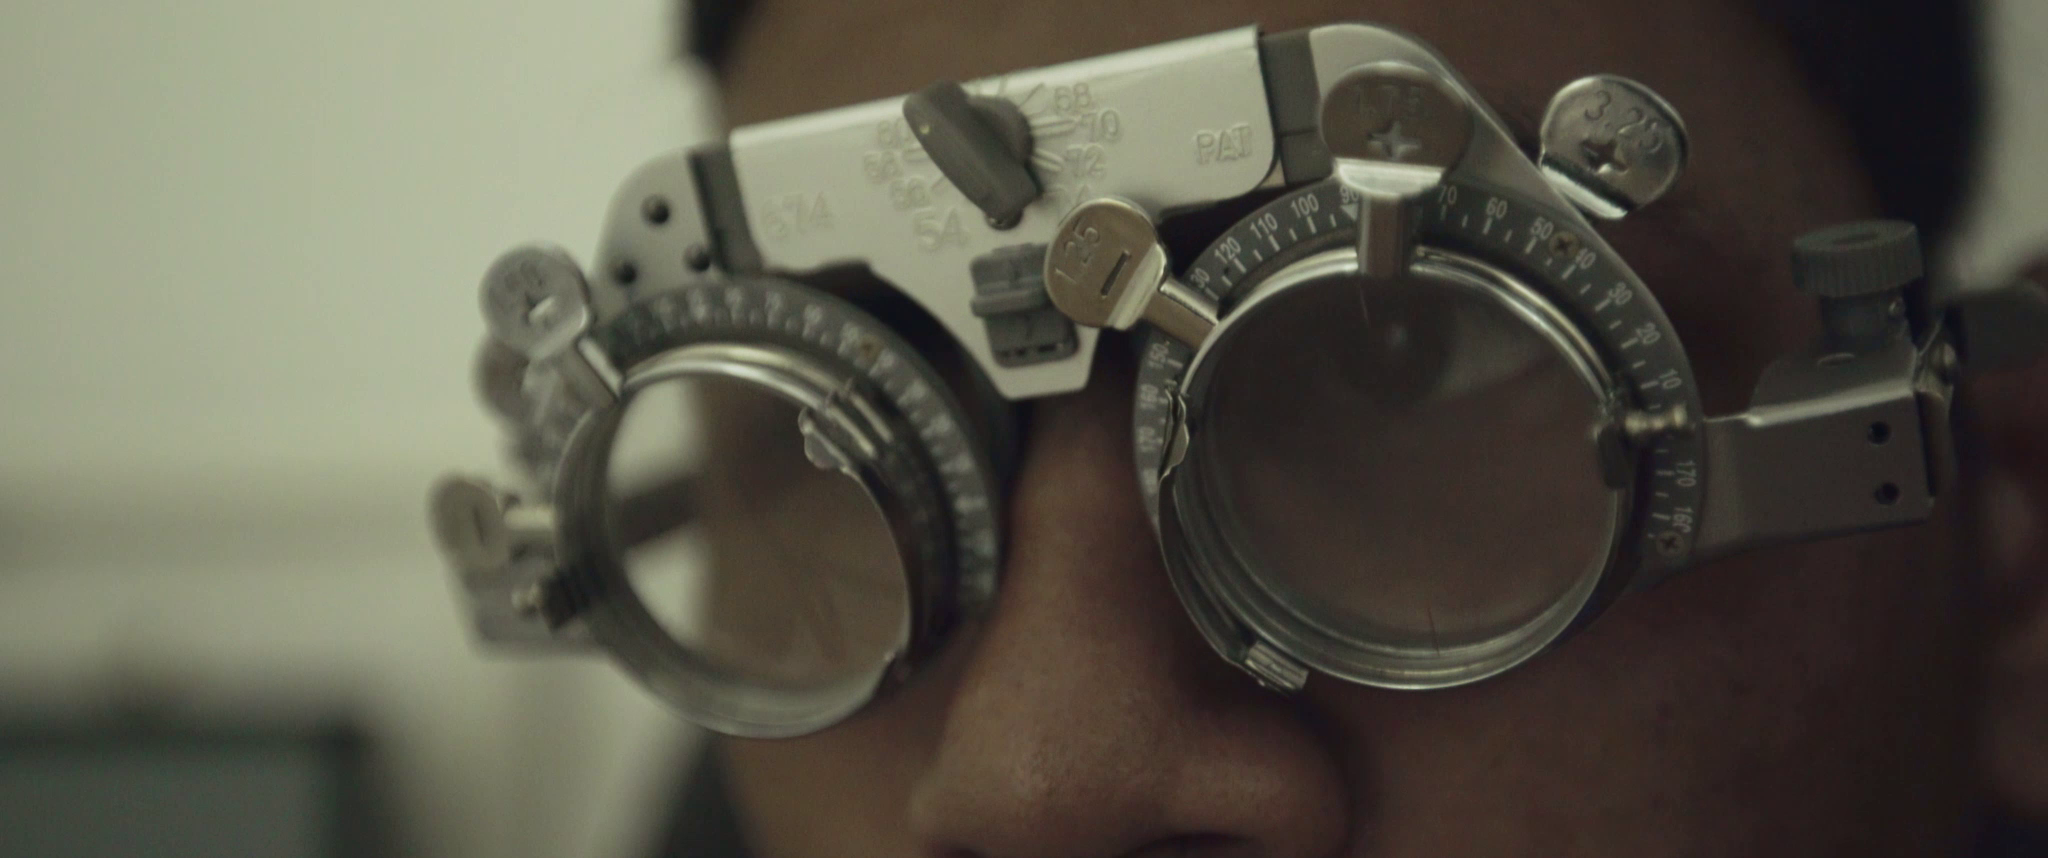 Blind footballer Asri is wearing a testing device with large lenses in a medical examination room.